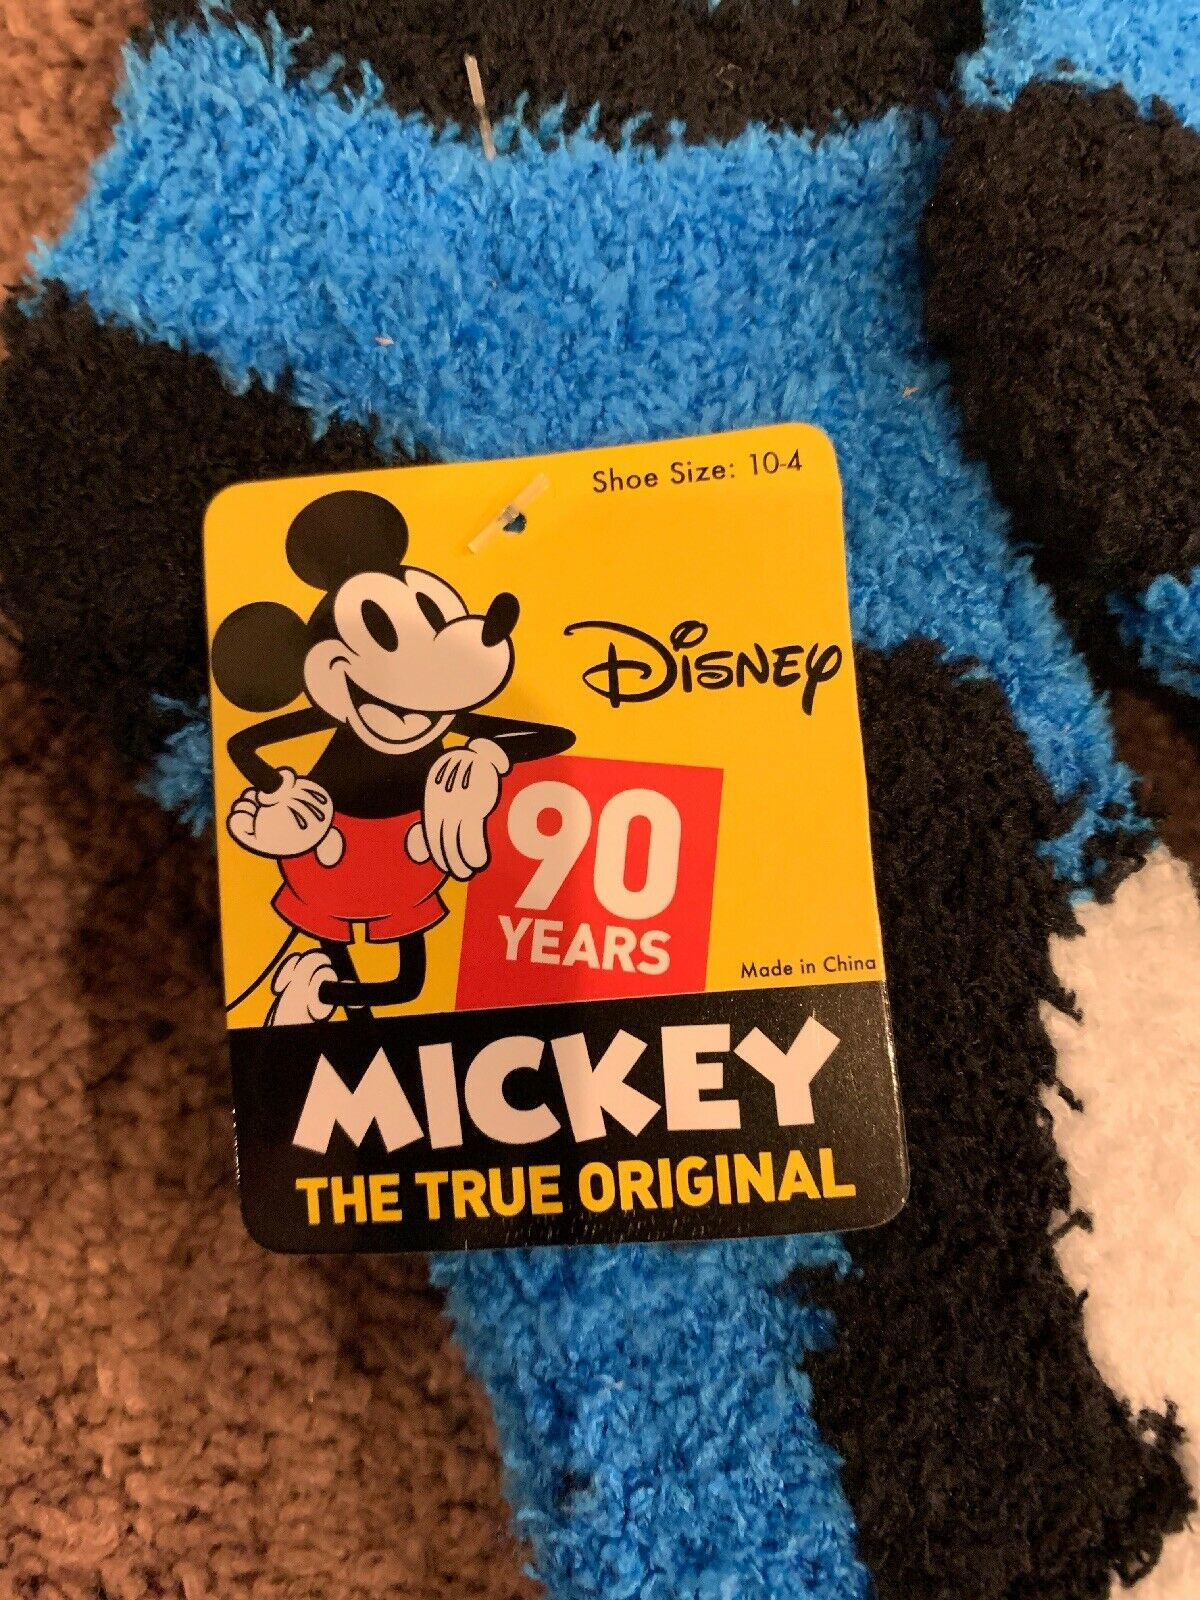 Lot Of 2 NWT Pairs Disney Fuzzy Socks Mickey Mouse Youth Kids 10-4 image 2